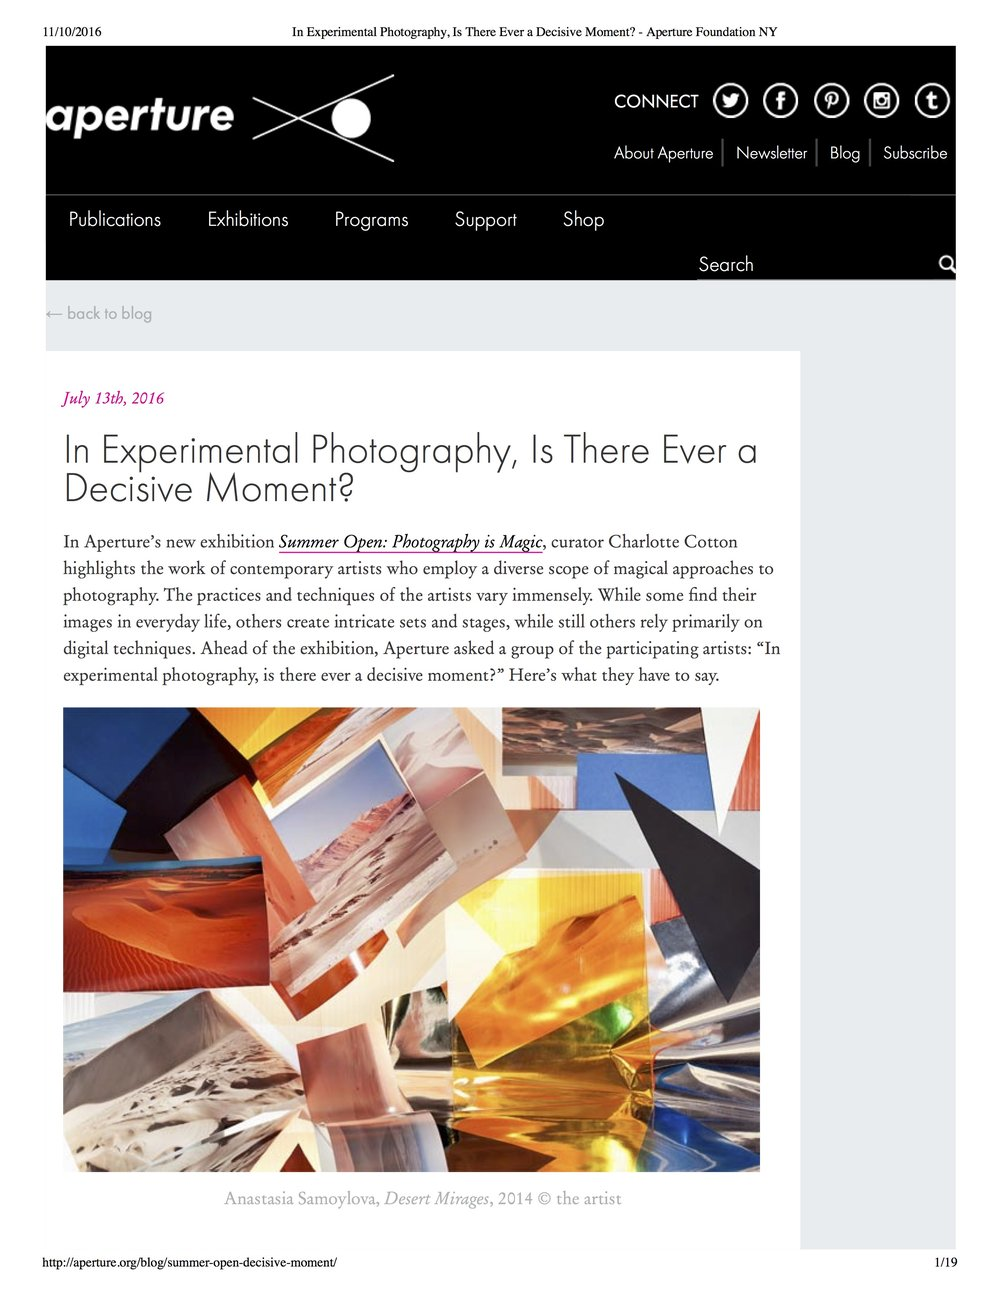 In Experimental Photography, Is There Ever a Decisive Moment?  Aperture Blog